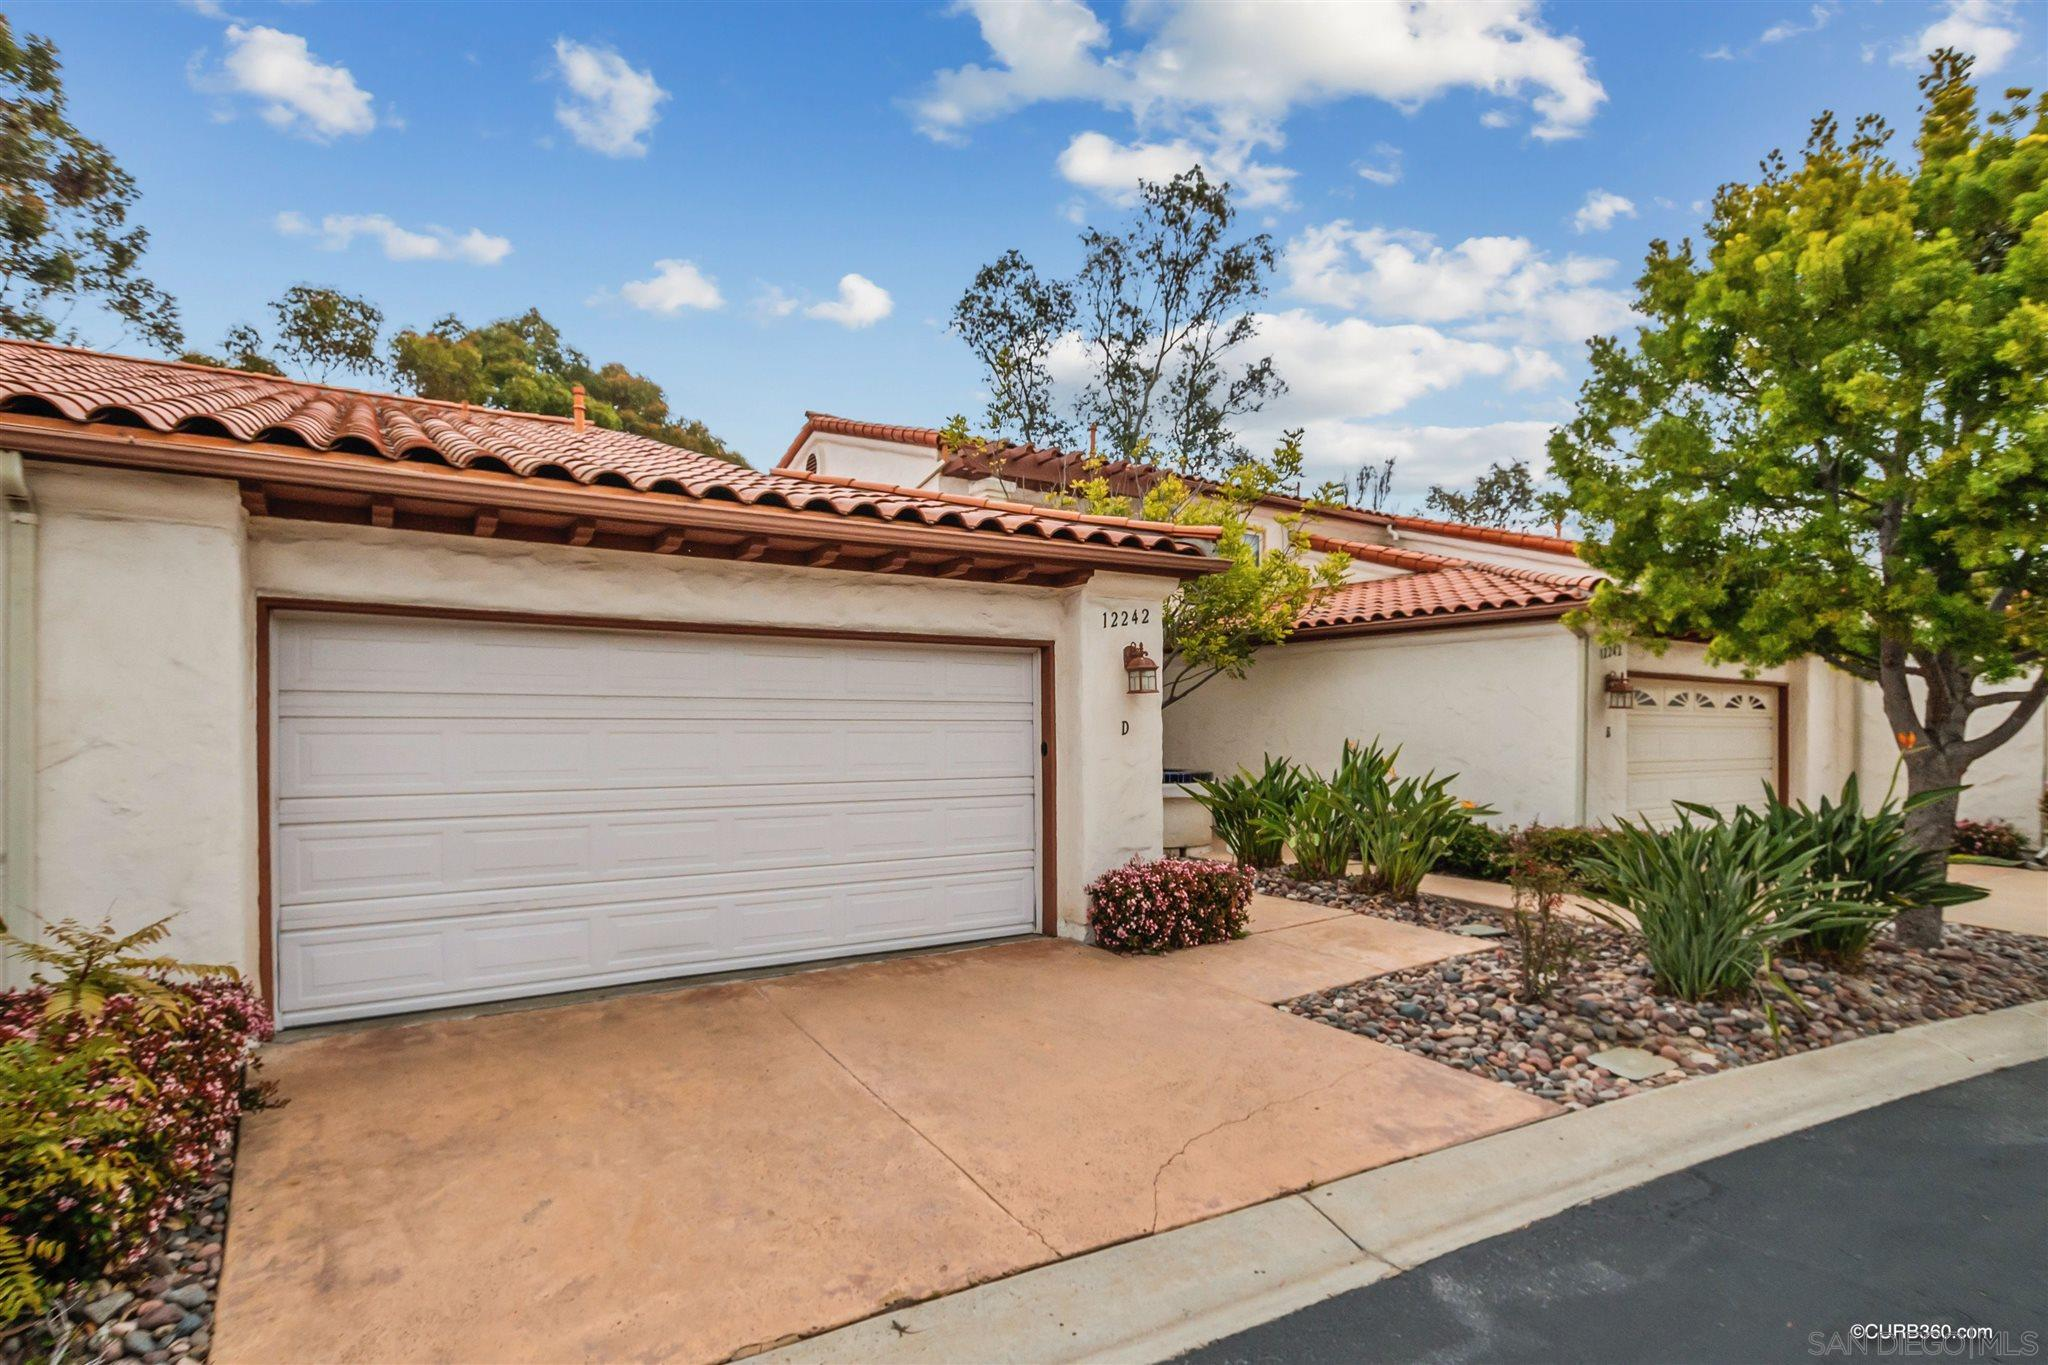 Great opportunity to own in Rancho Bernardo with Golf Course Views!! This remodeled townhouse features 2 bedrooms, 2 bathrooms, granite counters, laminate flooring, and a 2 car garage!! Located in close proximity to freeway access, schools, and shopping.